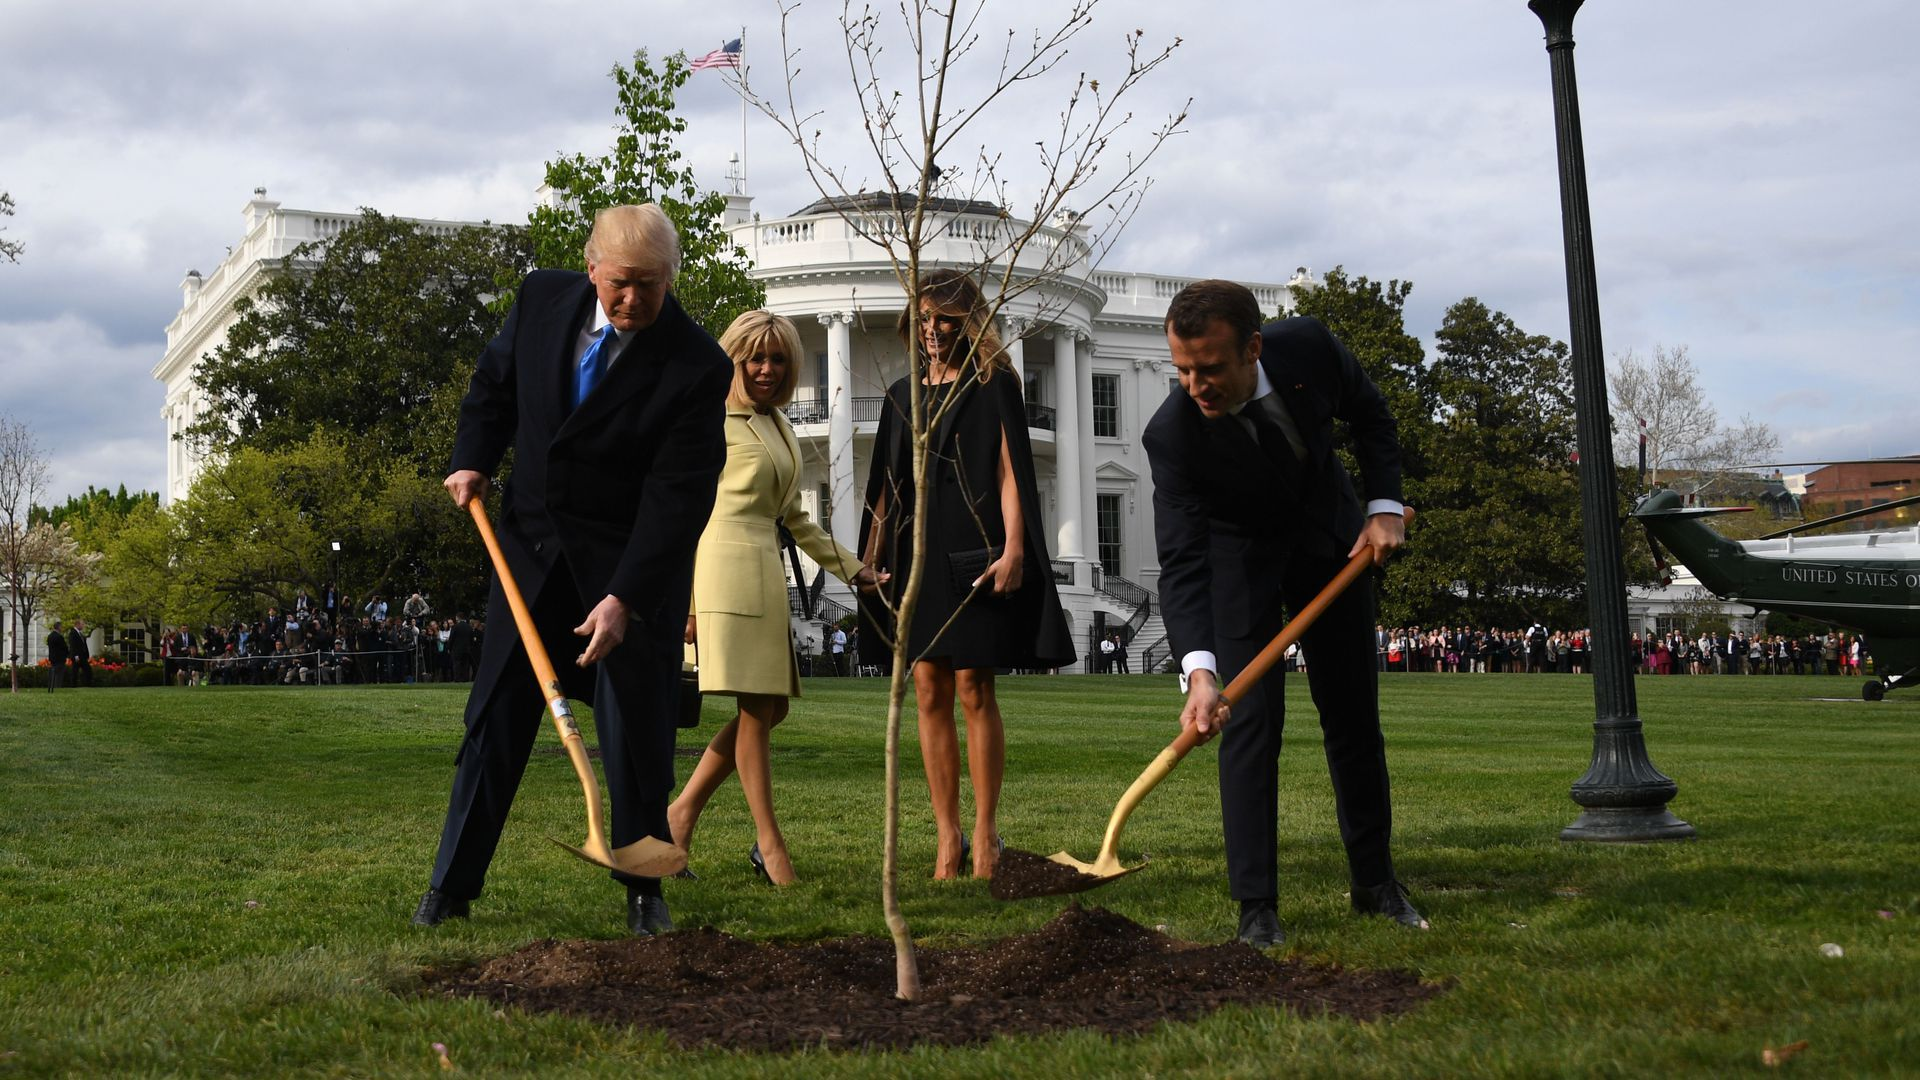 Trump and Macron shovel dirt over a newly planted tree at the White House